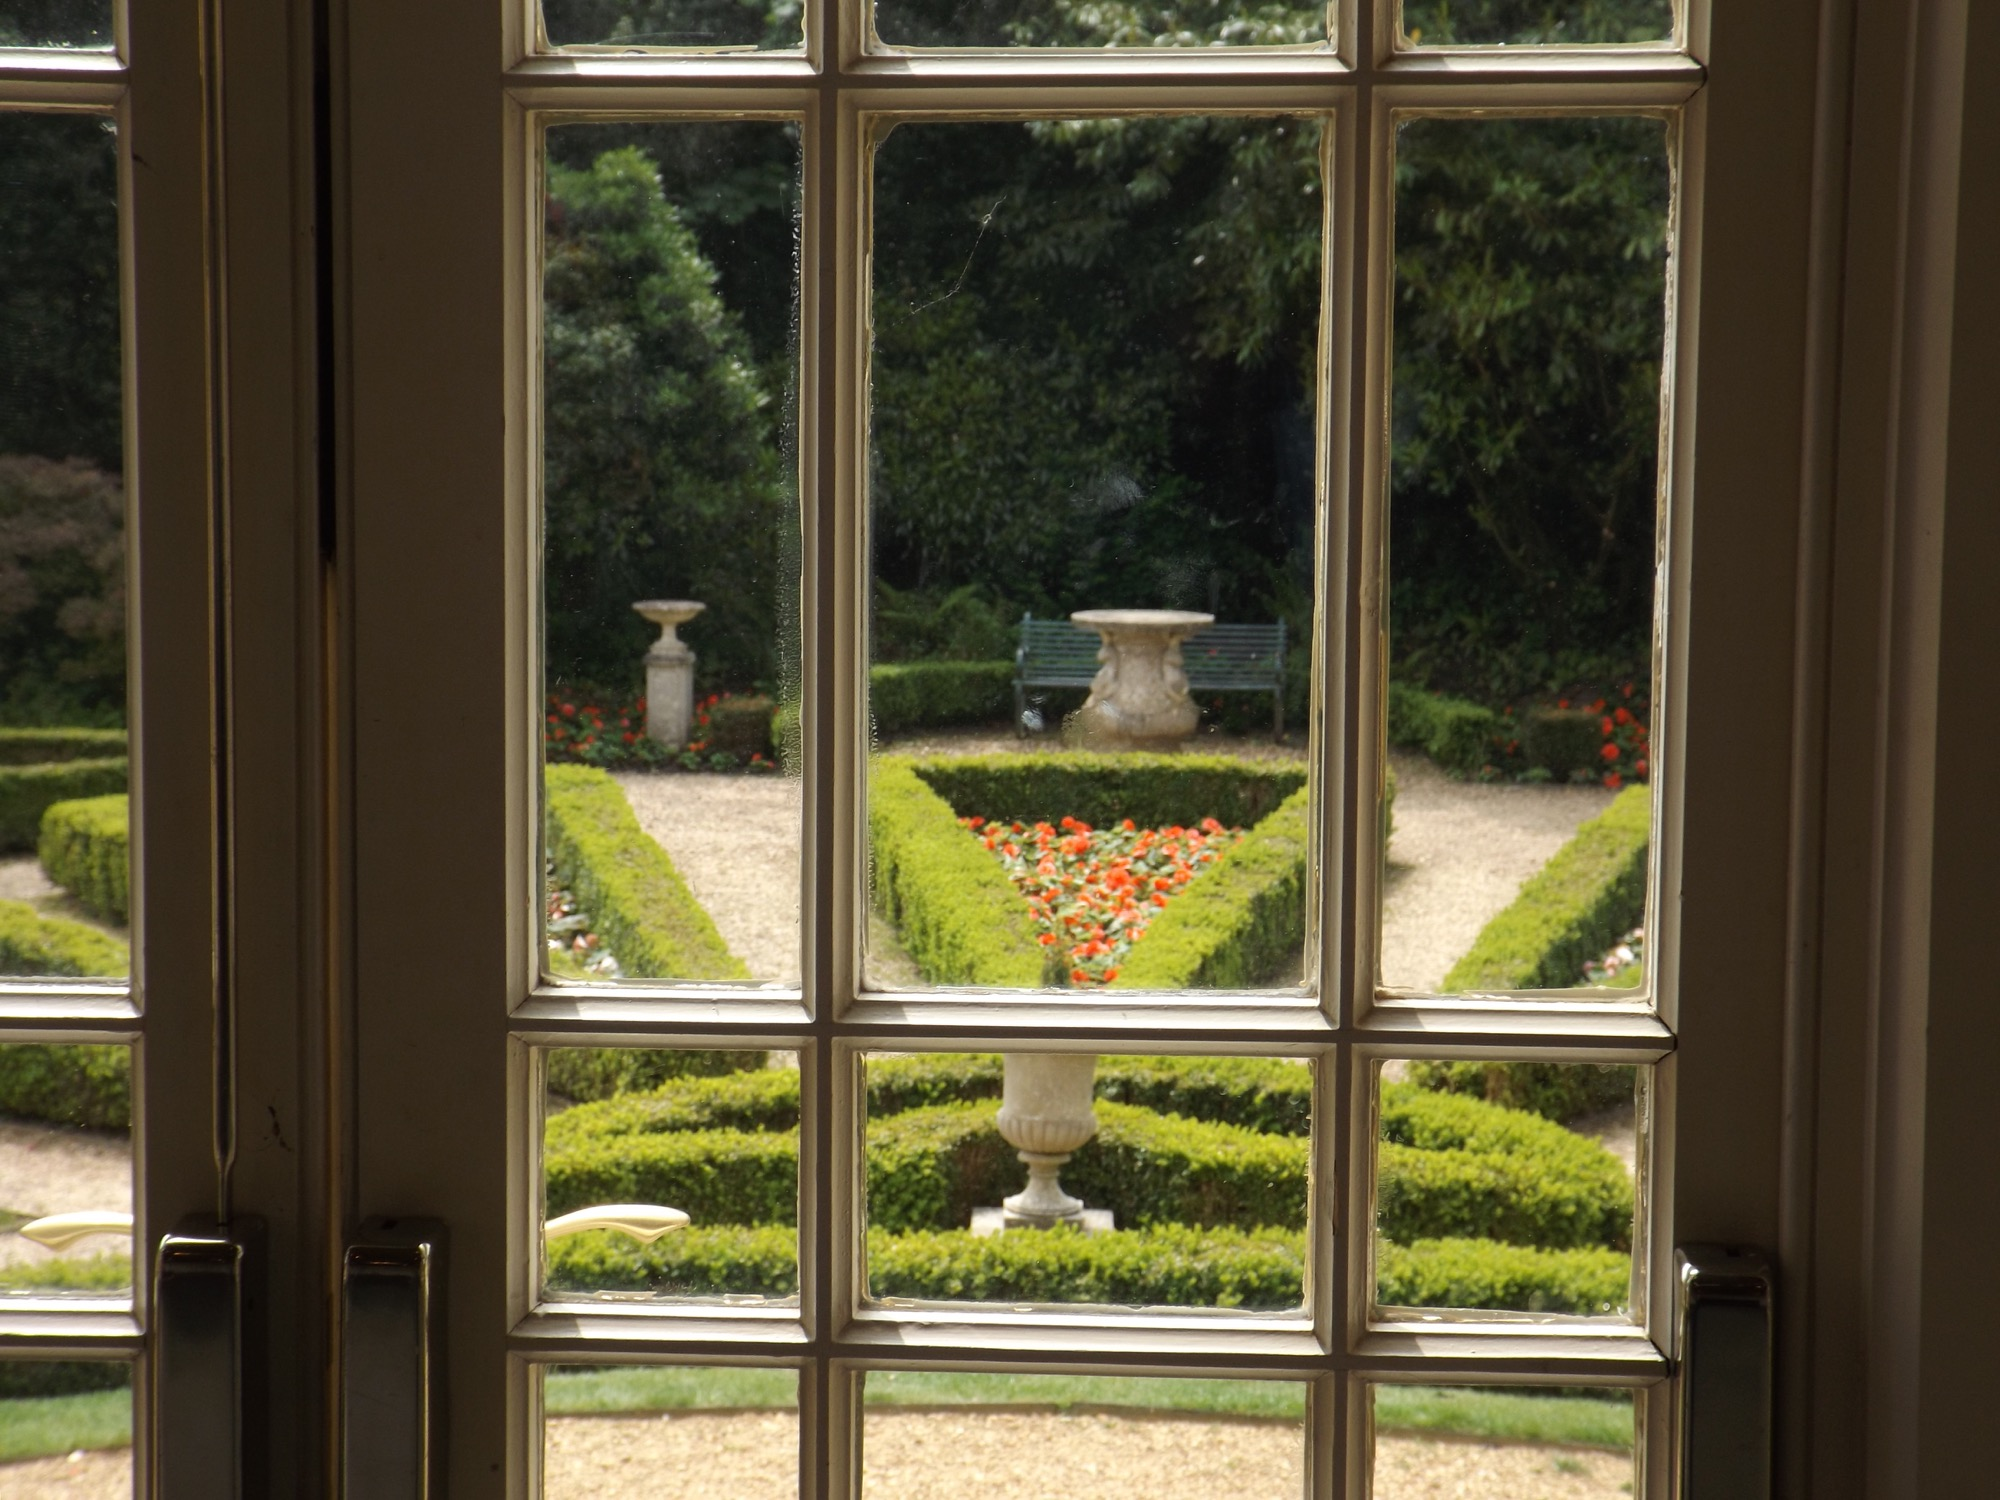 A view of the garden today